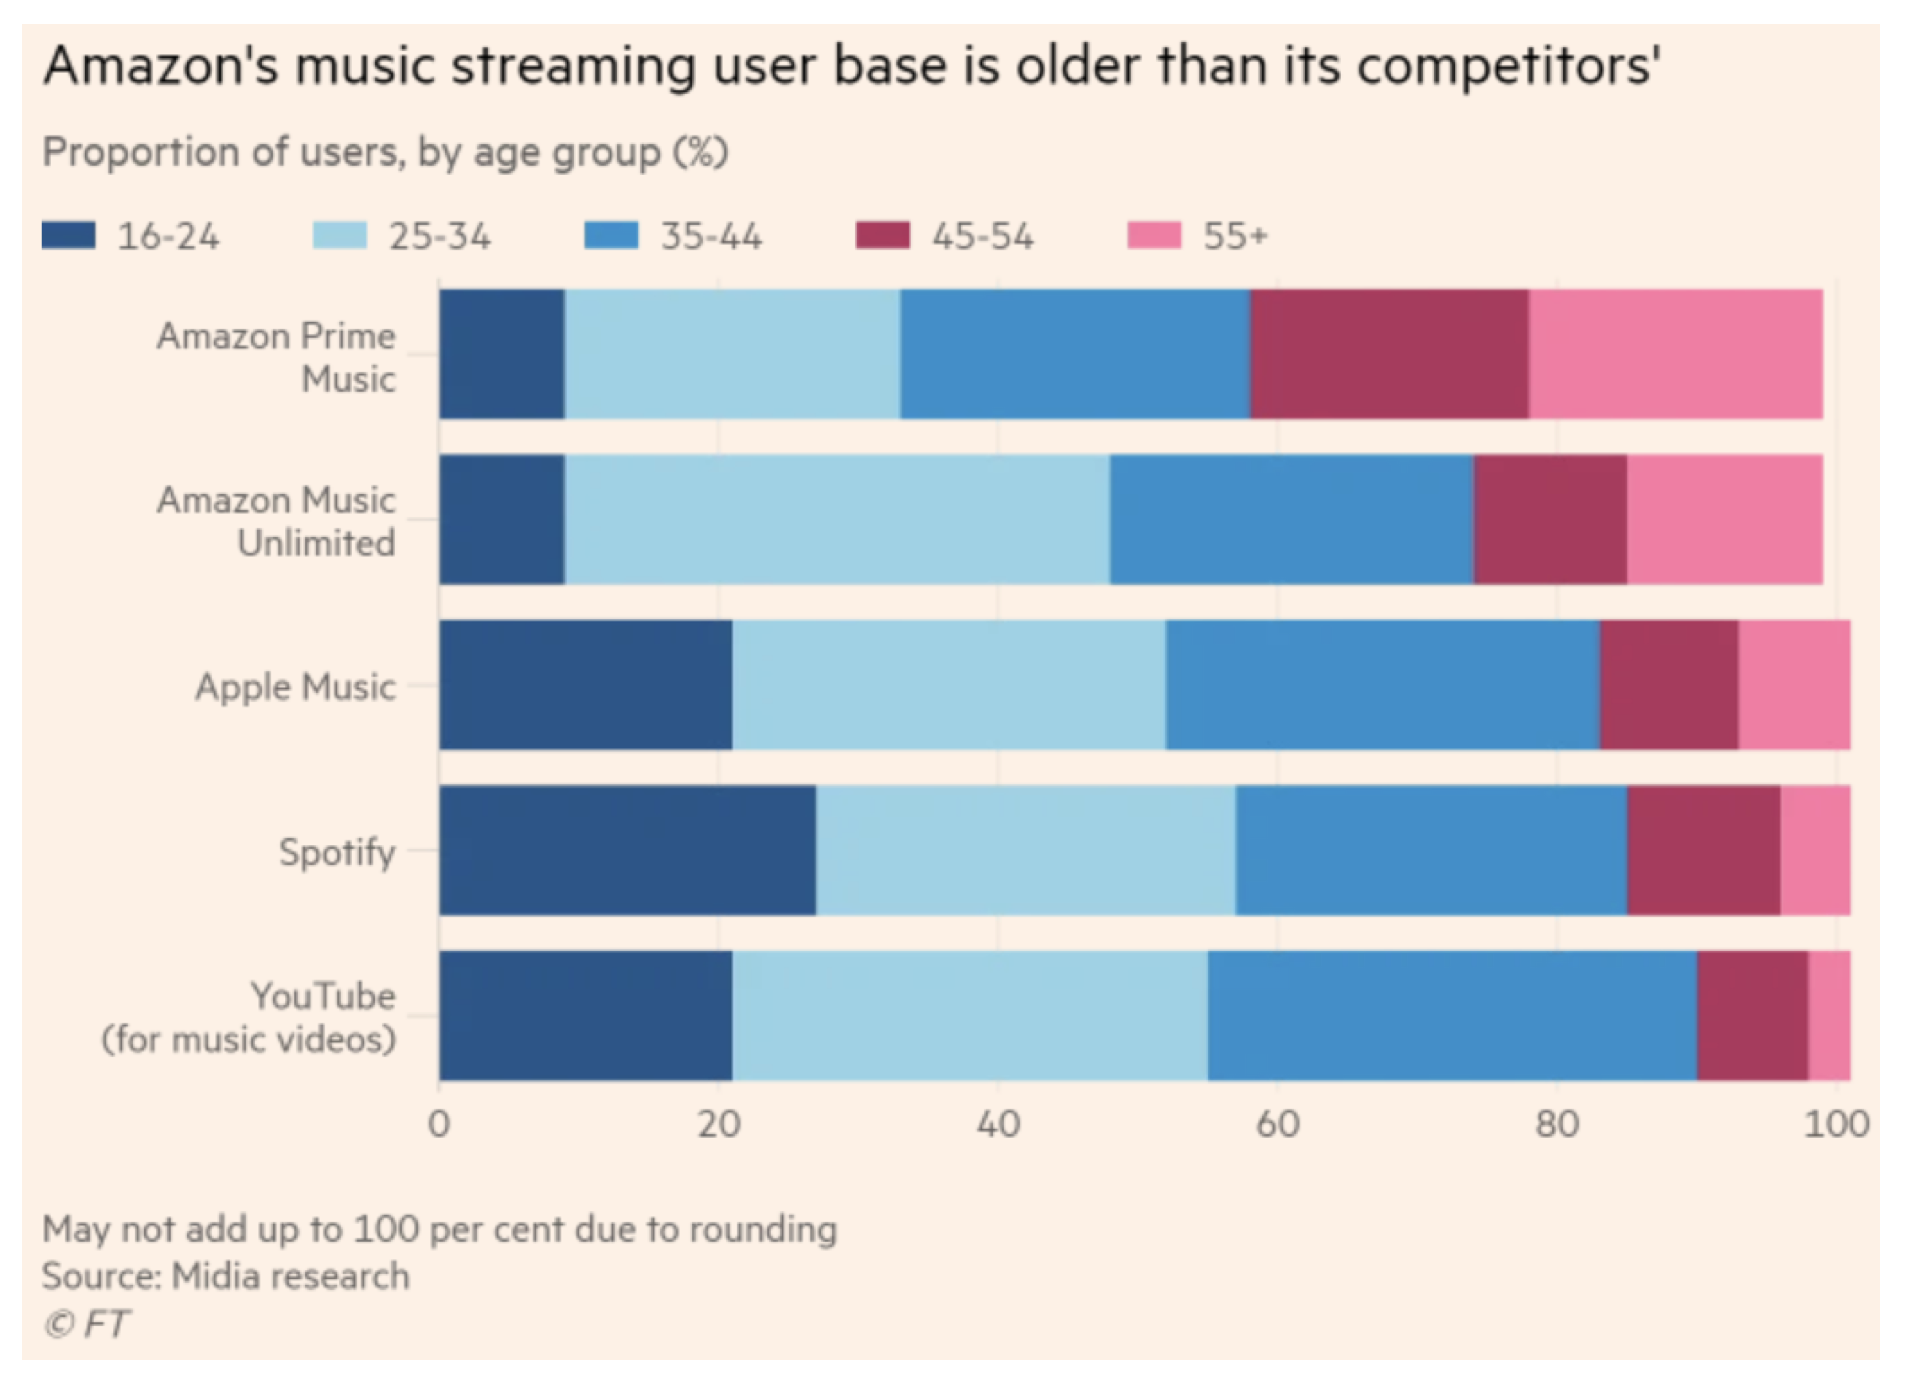 Which music streaming service is growing the fastest